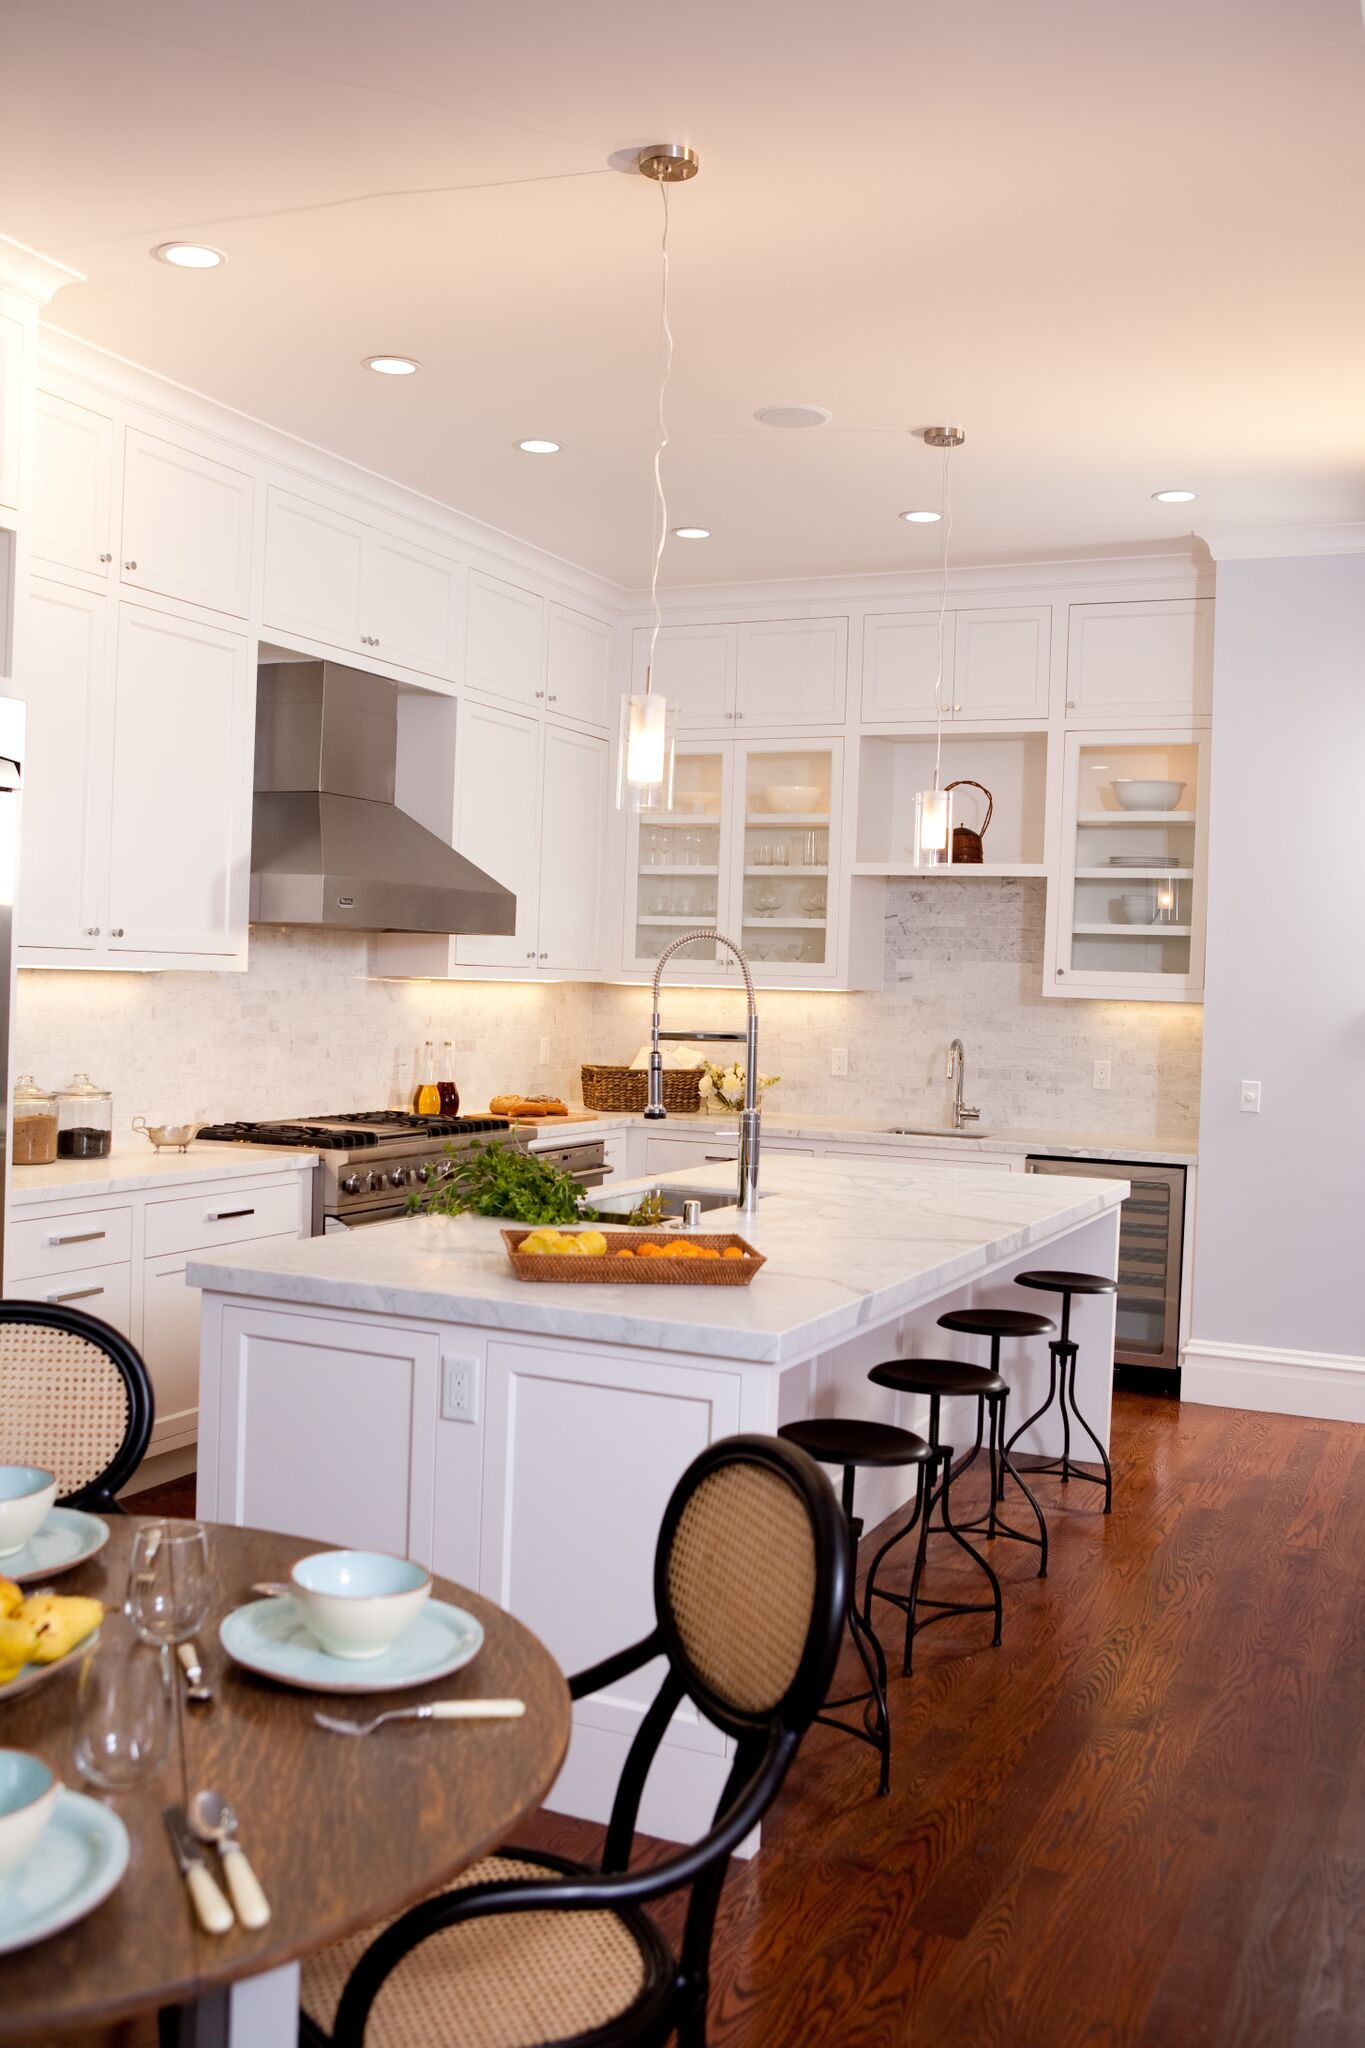 kitchen, bar  stools, breakfast nook, stainless steel appliances, carerra marble counters, subway tile backsplash